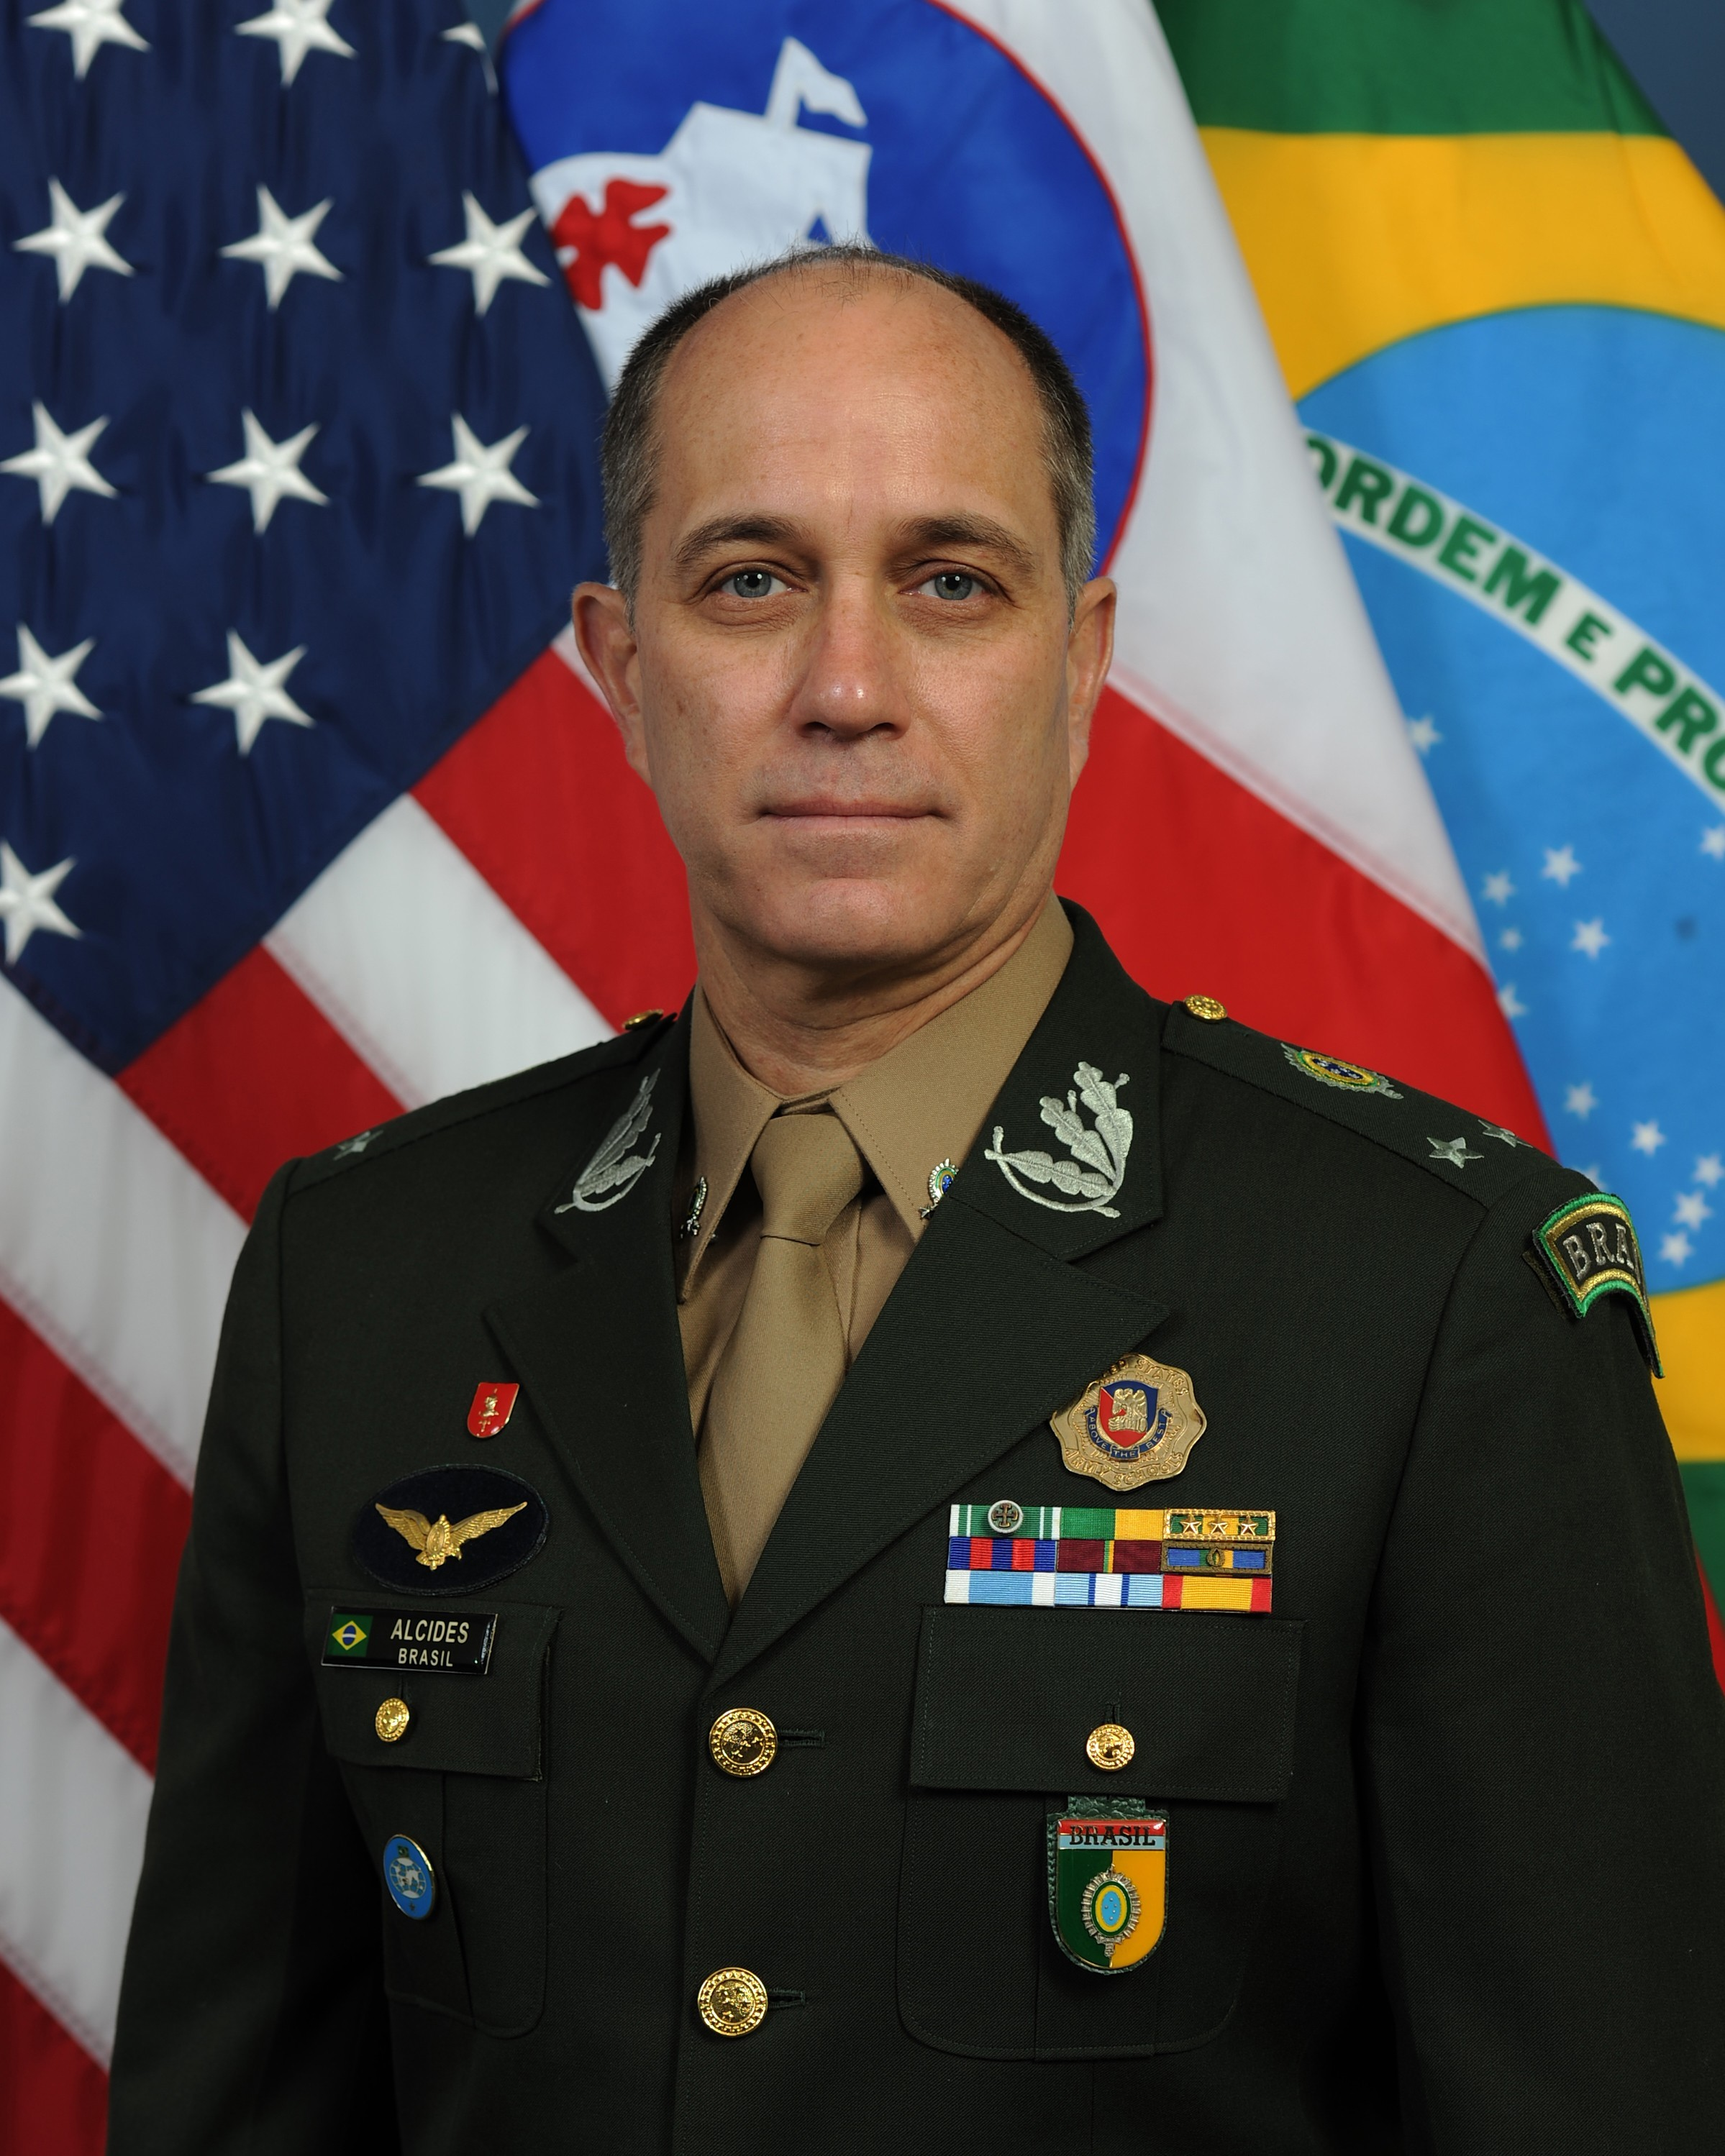 BG Alcides V. Faria, Jr